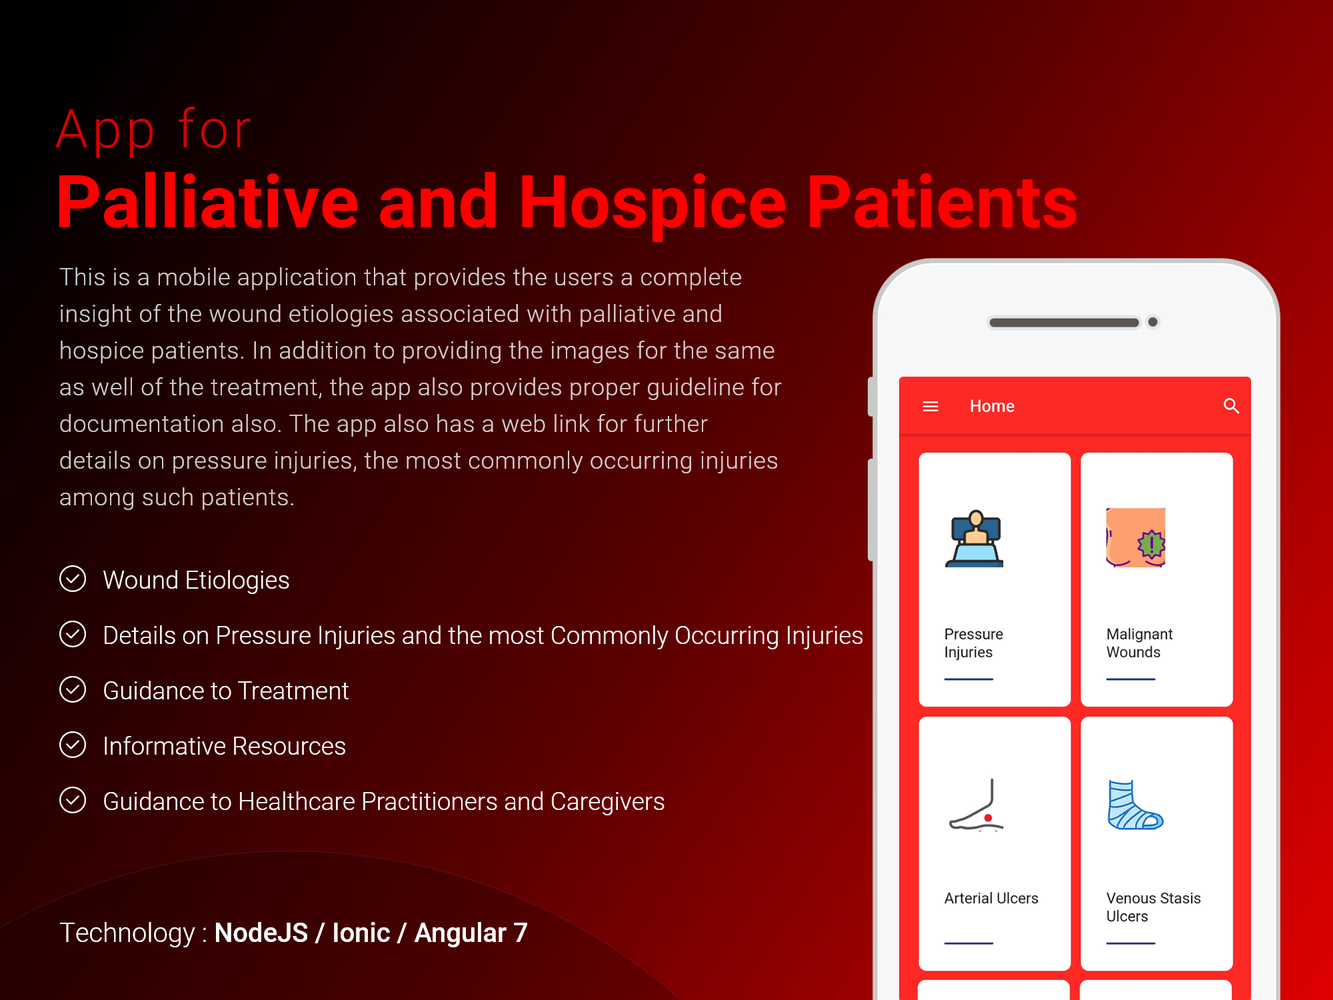 App for Palliative and Hospice Patients